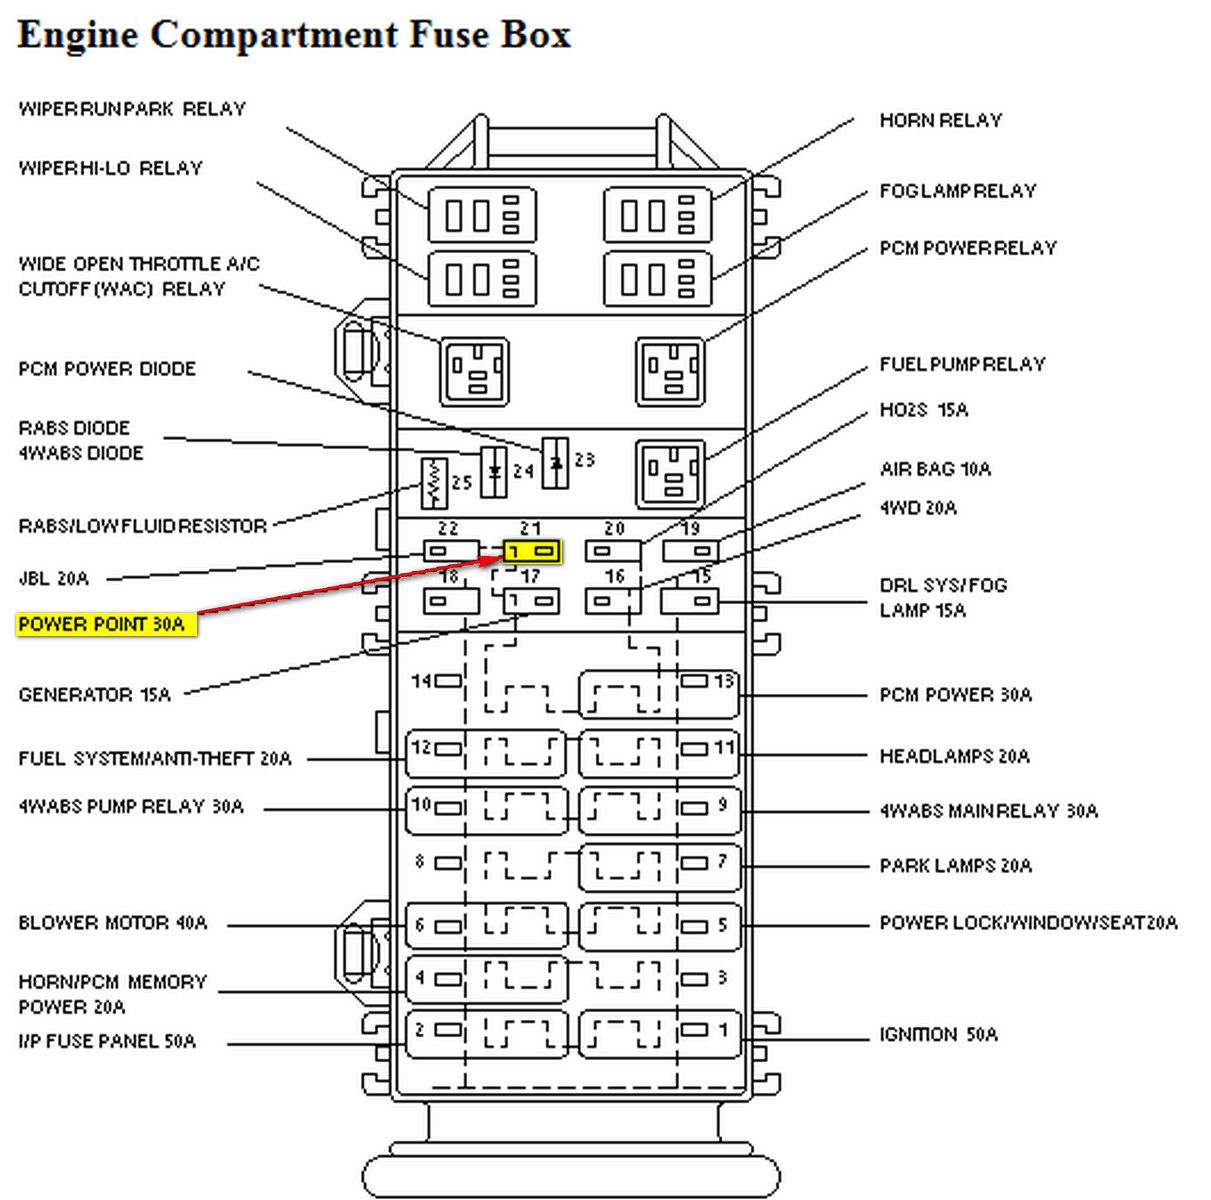 8a55967da7ae1bd251b795845886bd24 2002 ford ranger fuse diagram 1997 ford ranger fuse box diagram 2001 ford ranger fuse diagram at bayanpartner.co